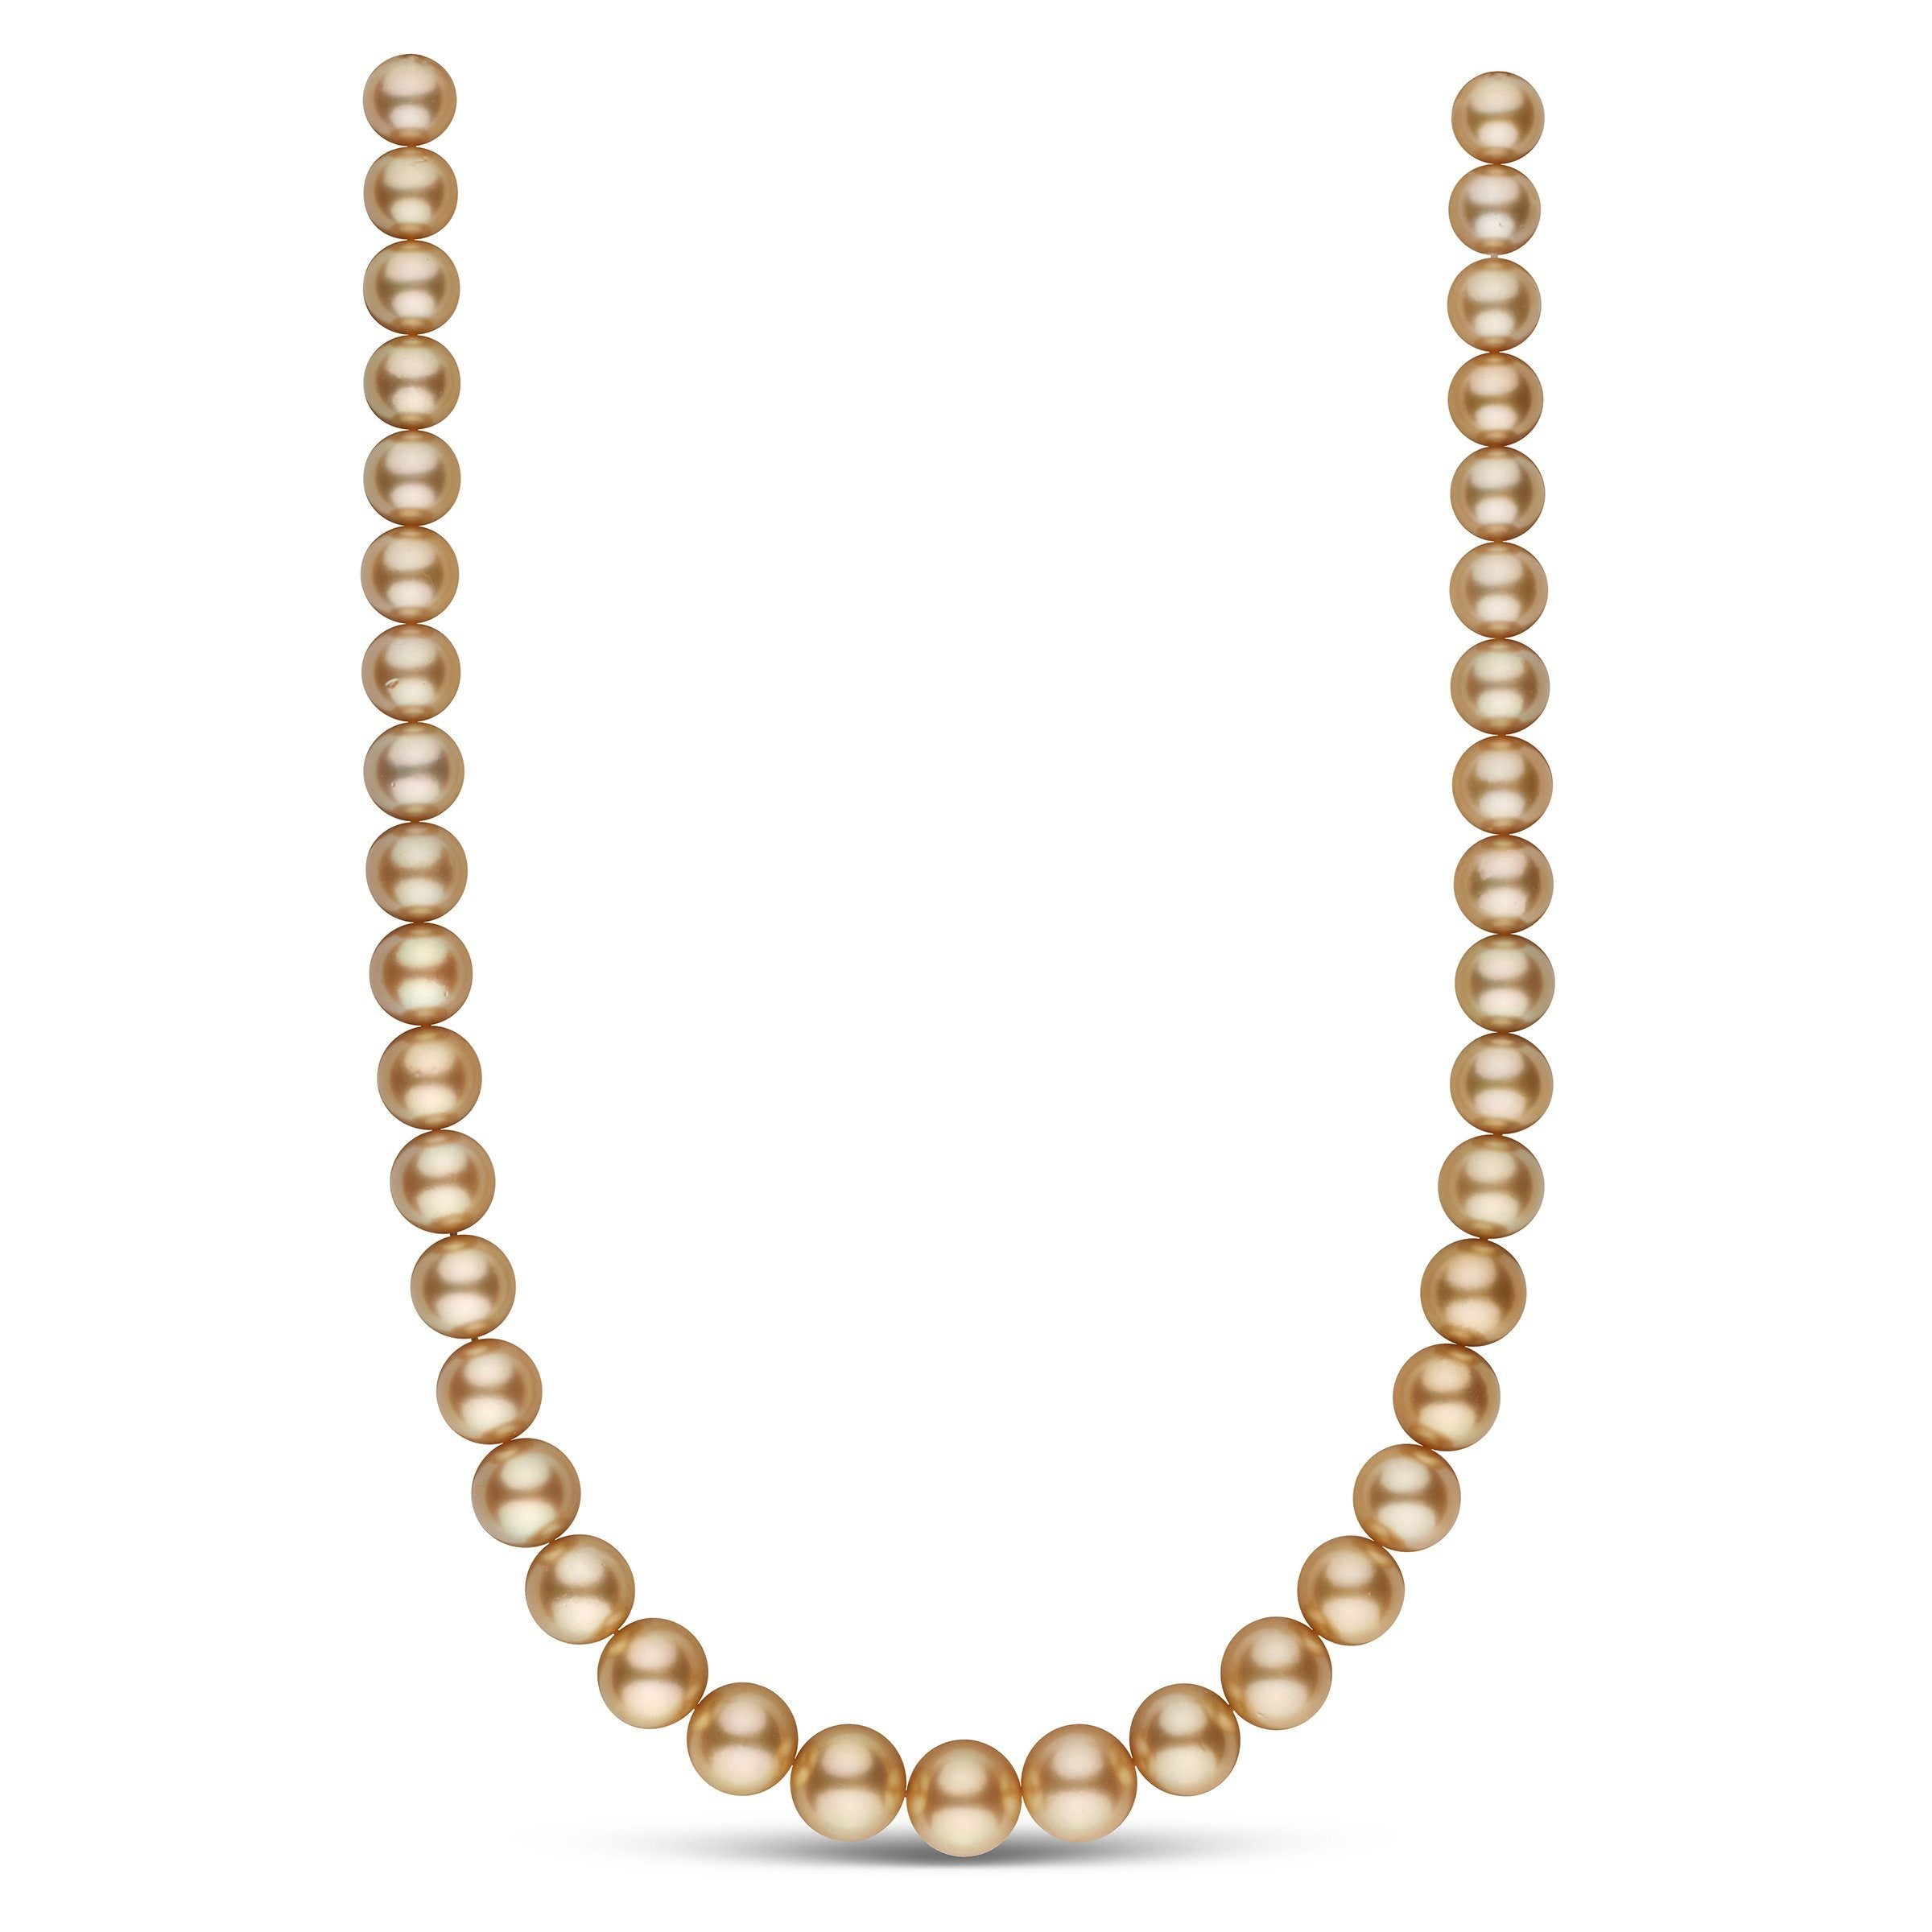 10.2-12.7 mm AA+/AAA Golden South Sea Round Pearl Necklace